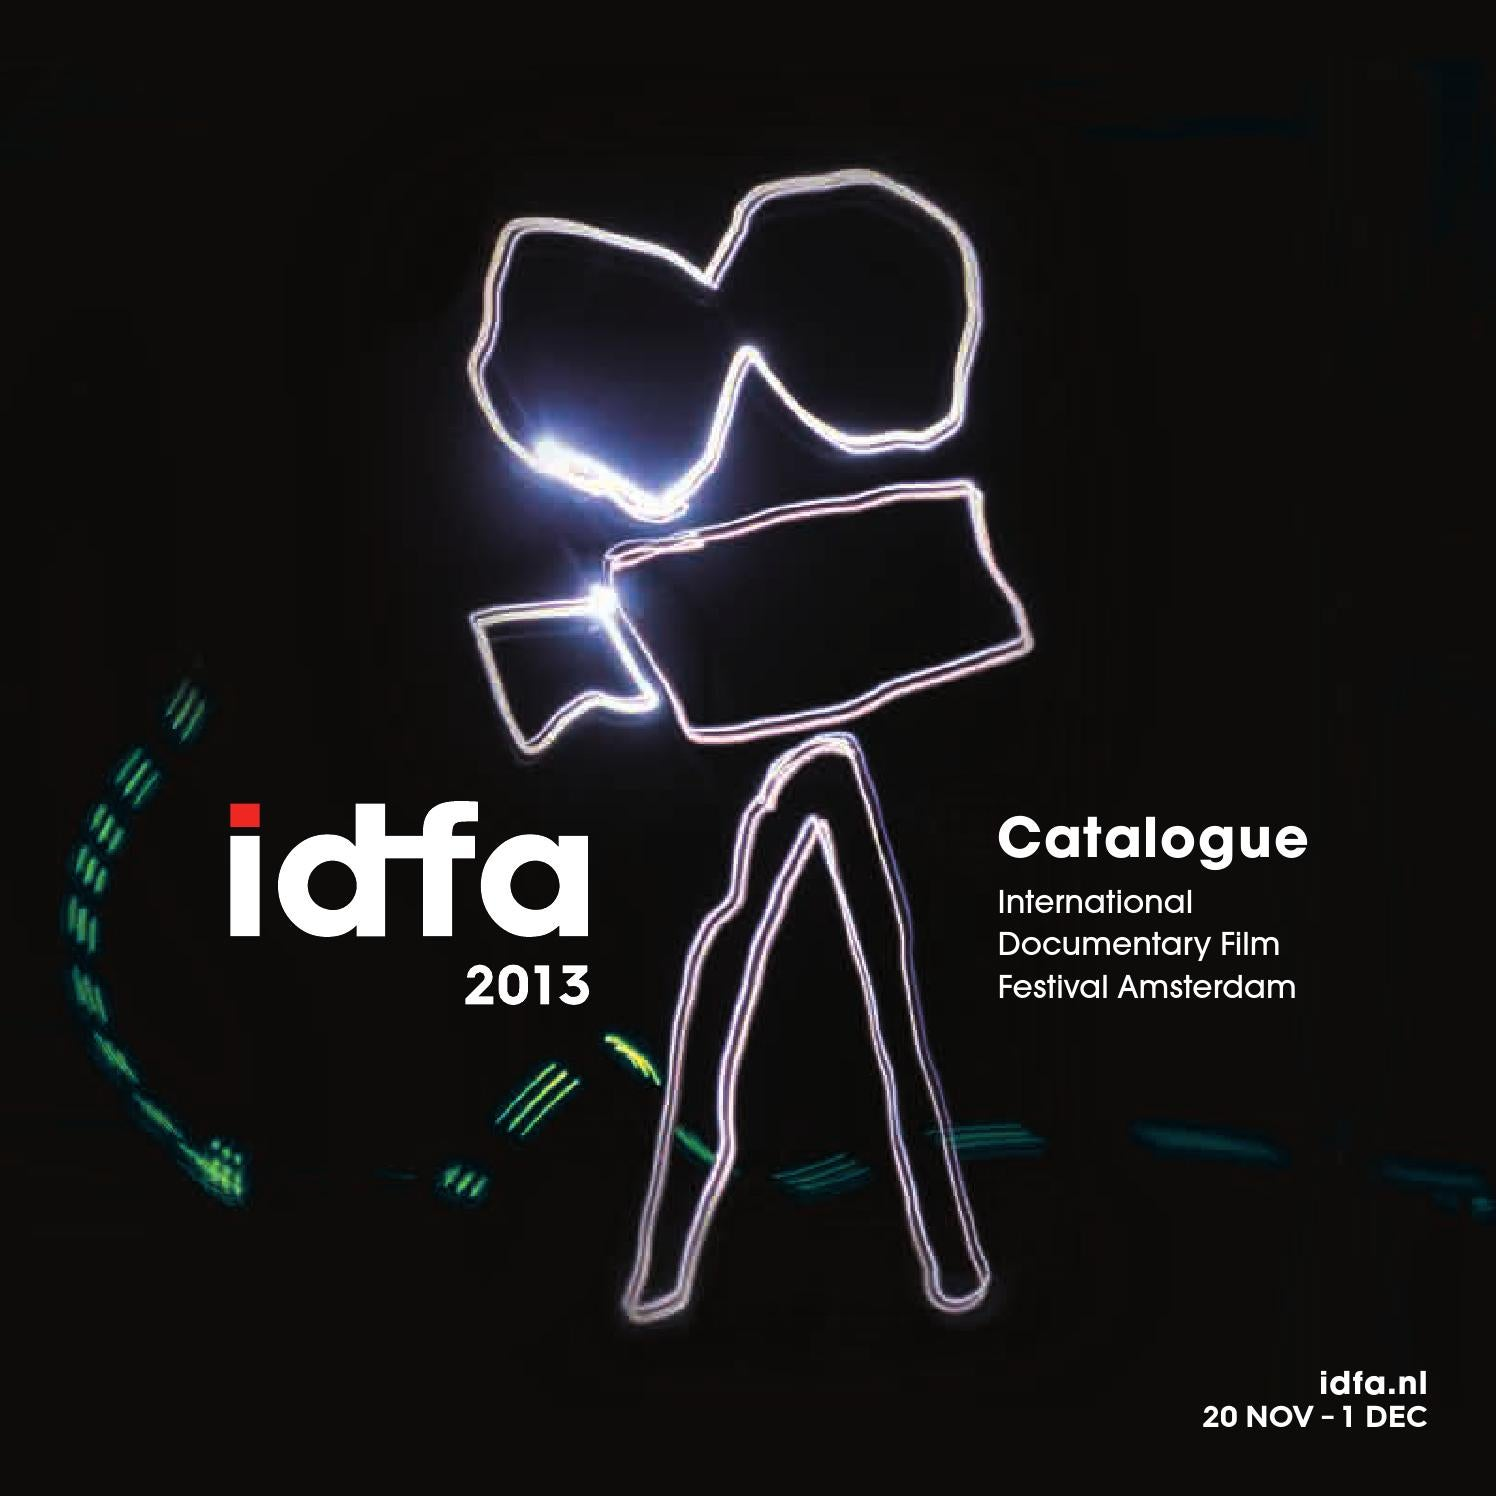 Catalogue idfa 2015 by idfa international documentary film ...